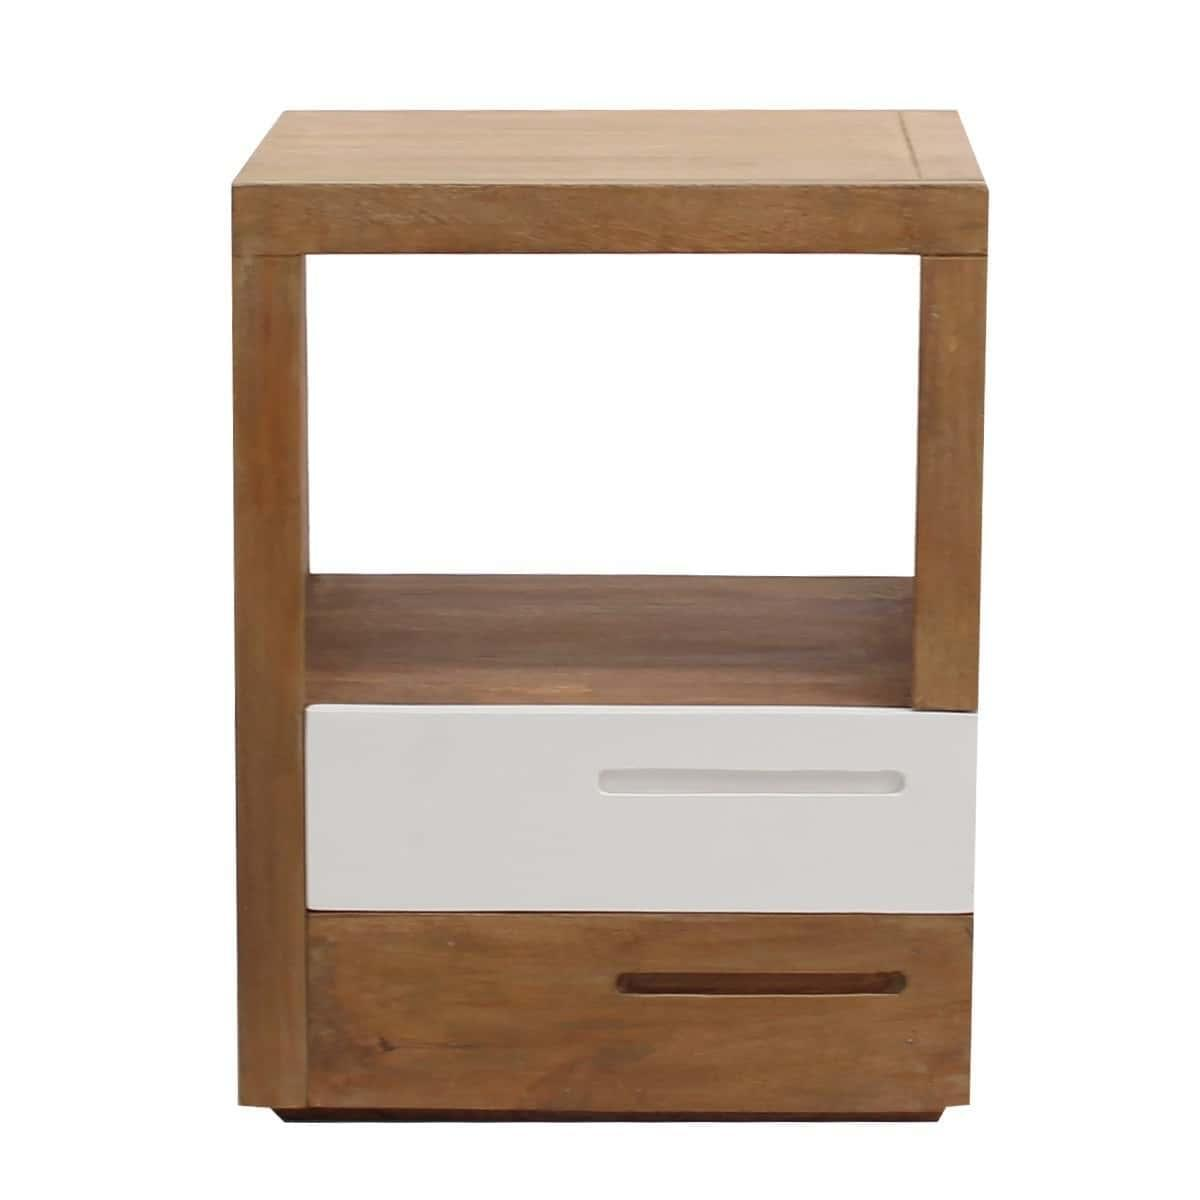 Grace Modern Designer Bedside Table - Solid Wood